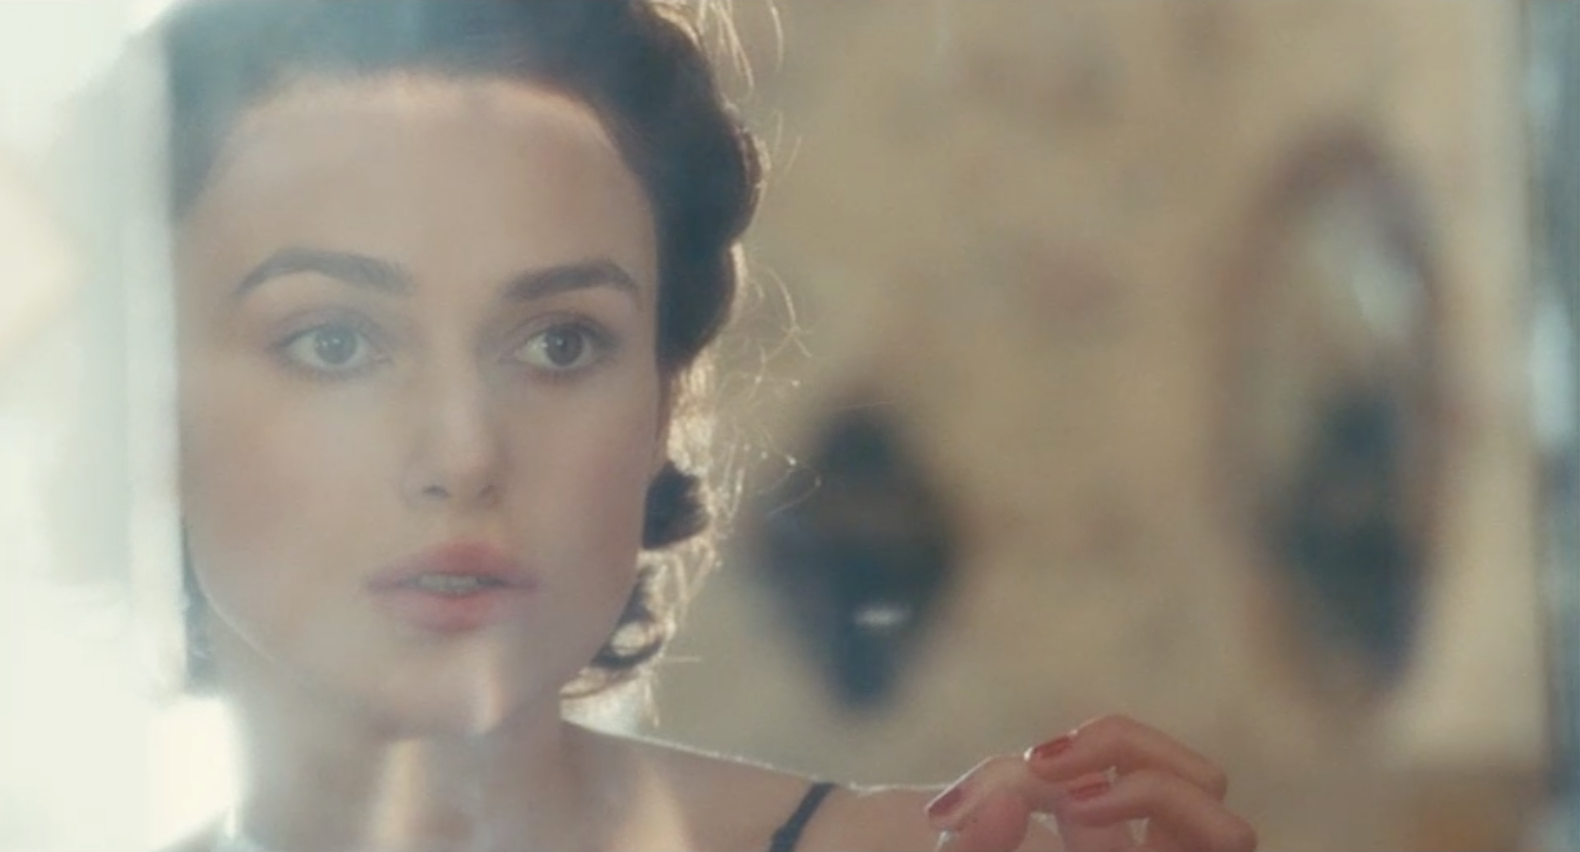 Keira Knightly filmed through stockings